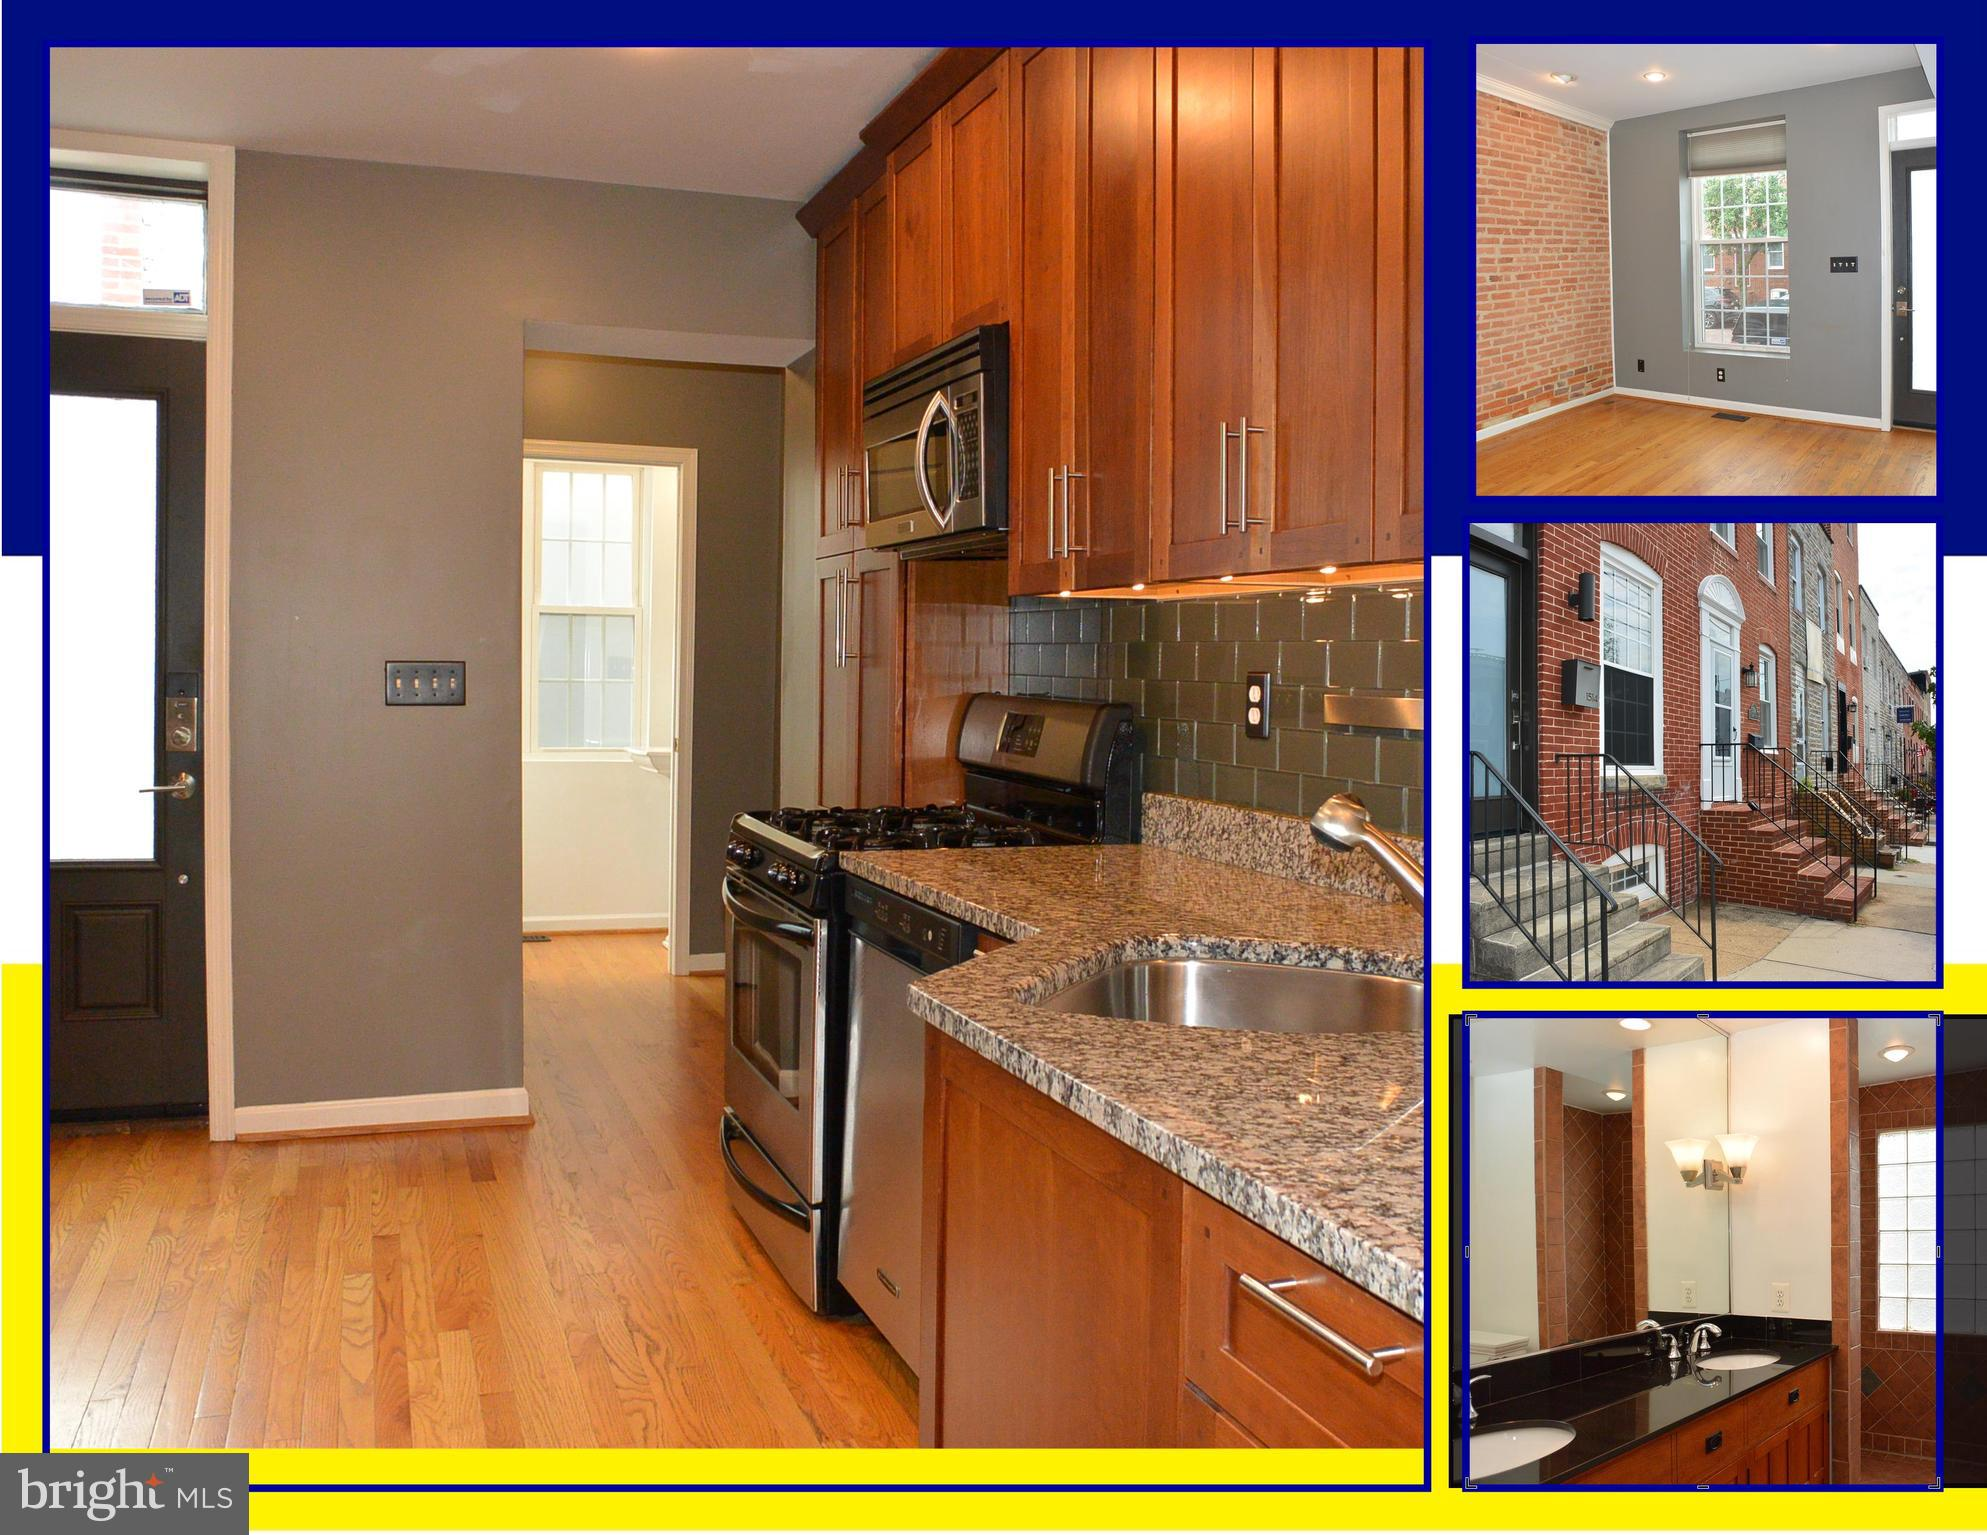 ARCHITECT-DESIGNED RENOVATION IN POPULAR LOCUST POINT. 3BR/2.5BA END-OF-GROUP TOWNHOUSE. ABUNDANT NA